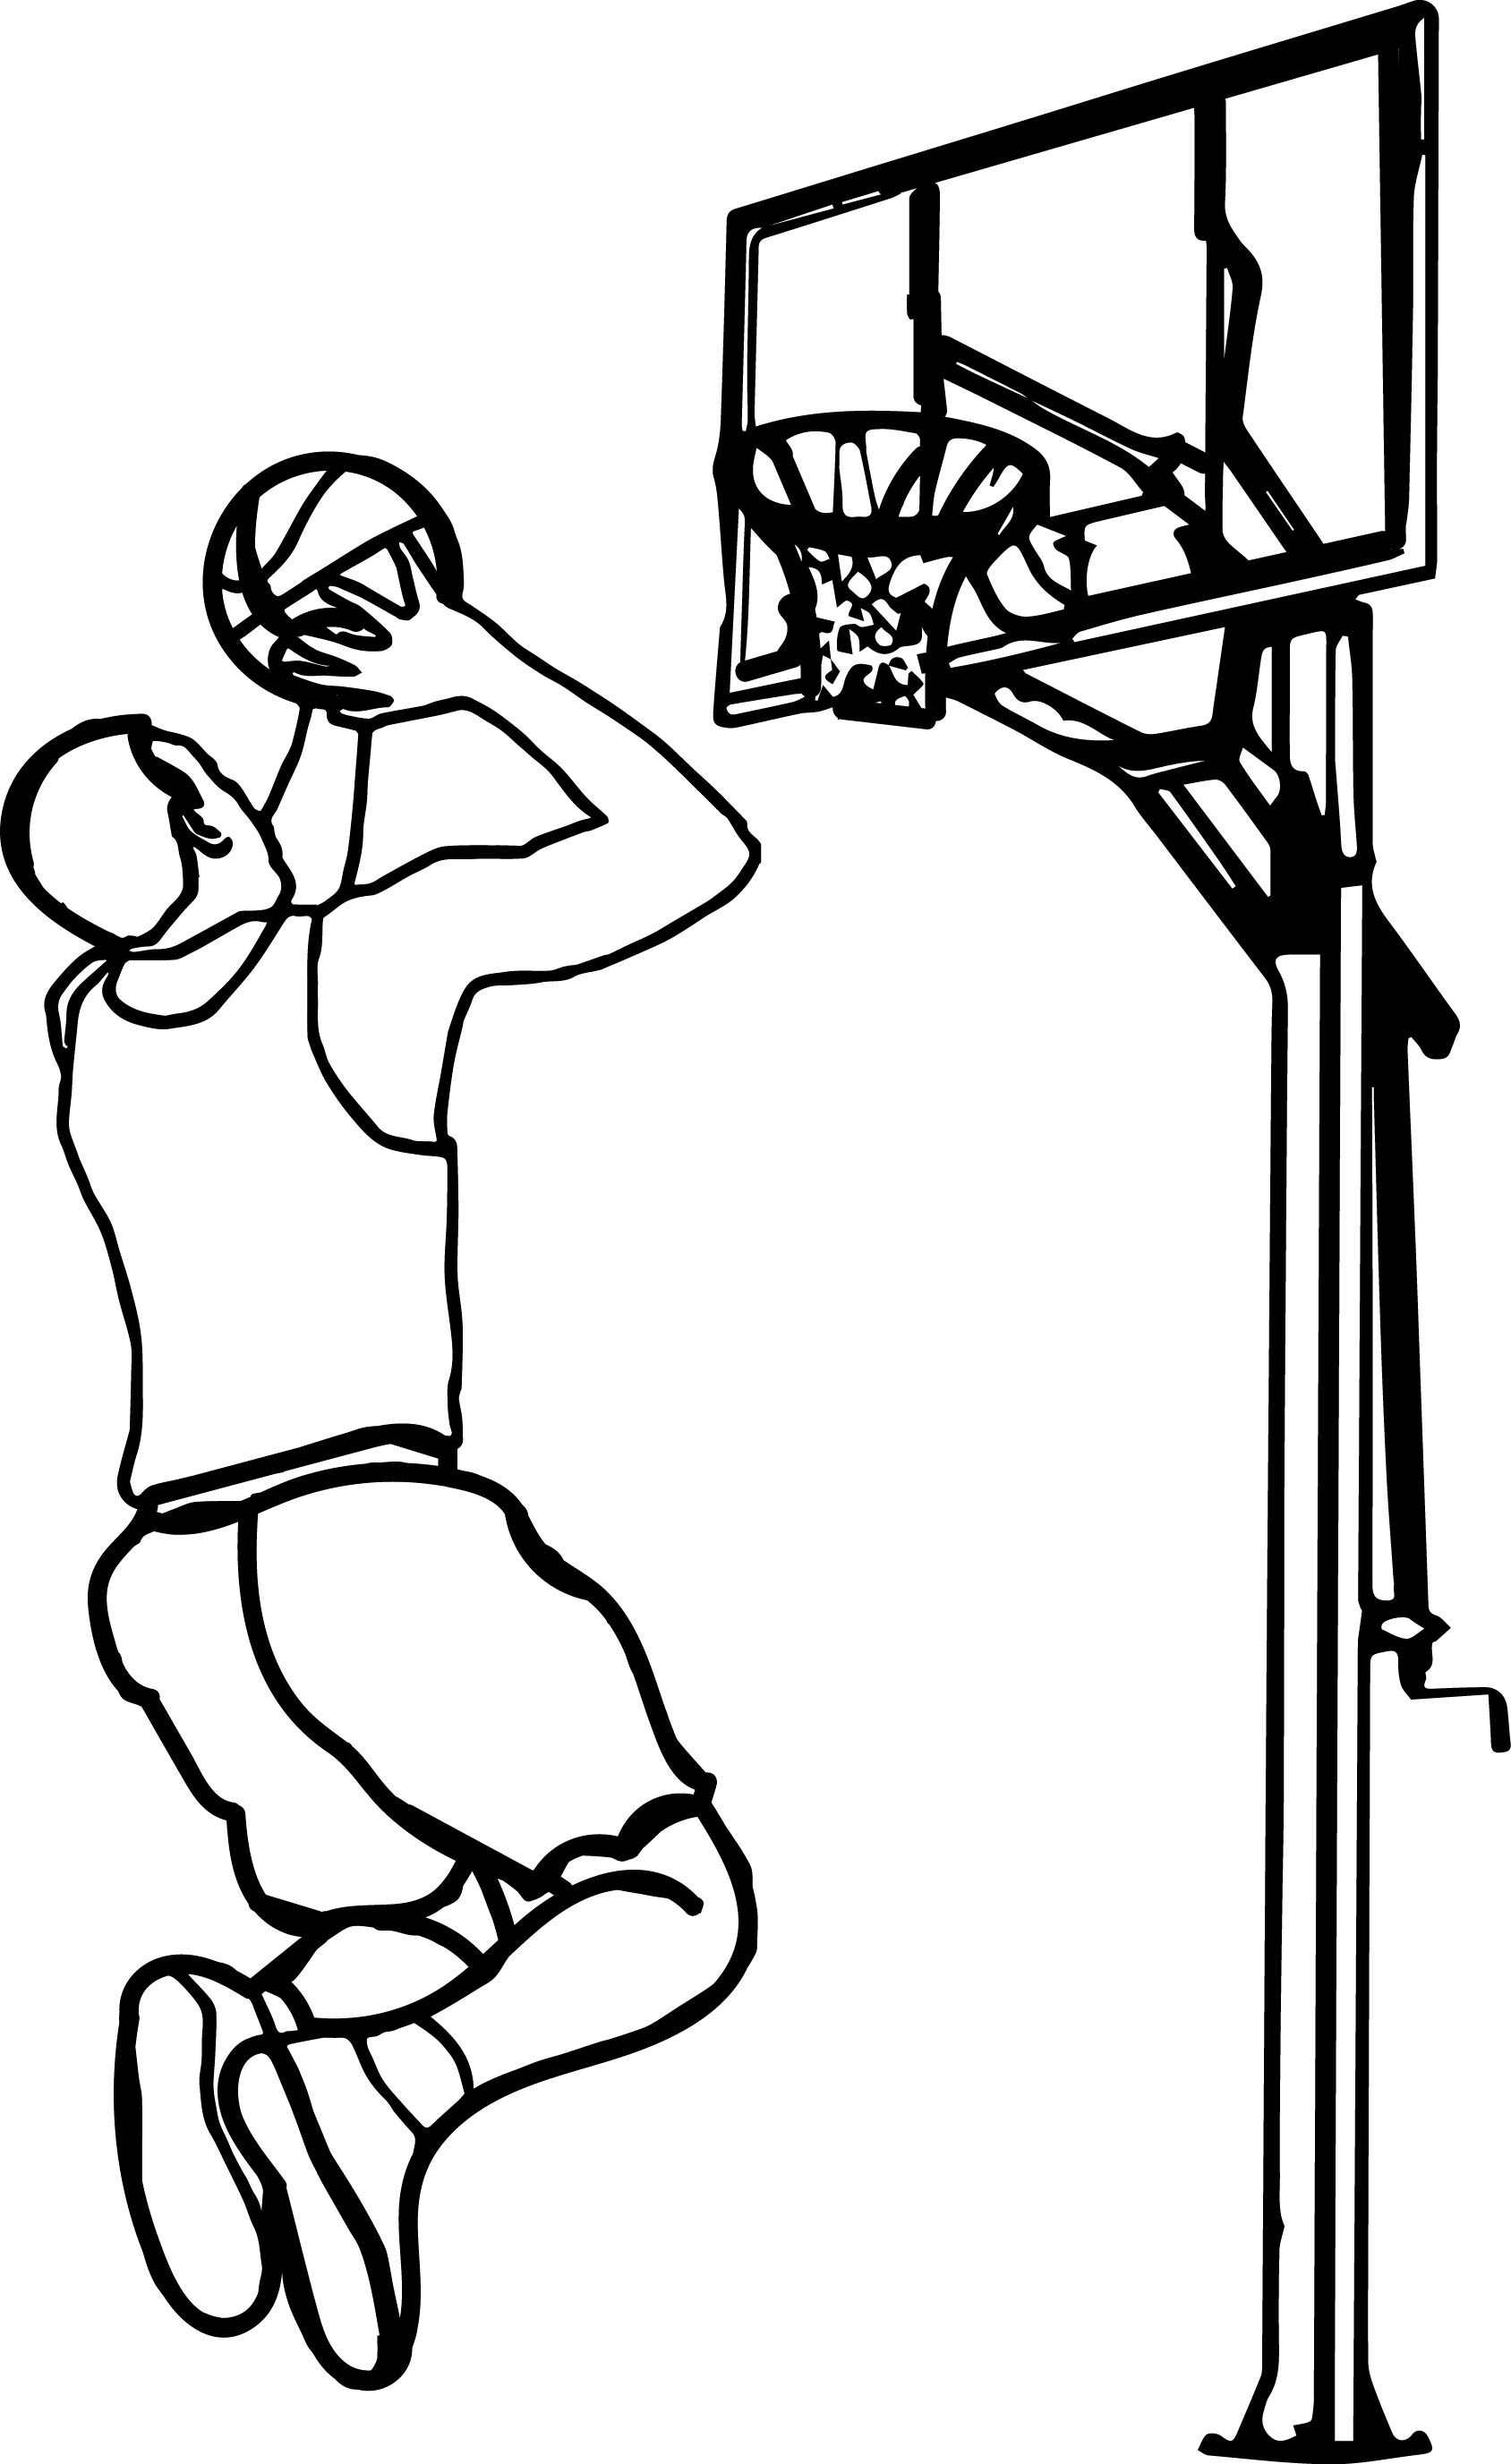 1688x2753 Basketball Hoop Coloring Page